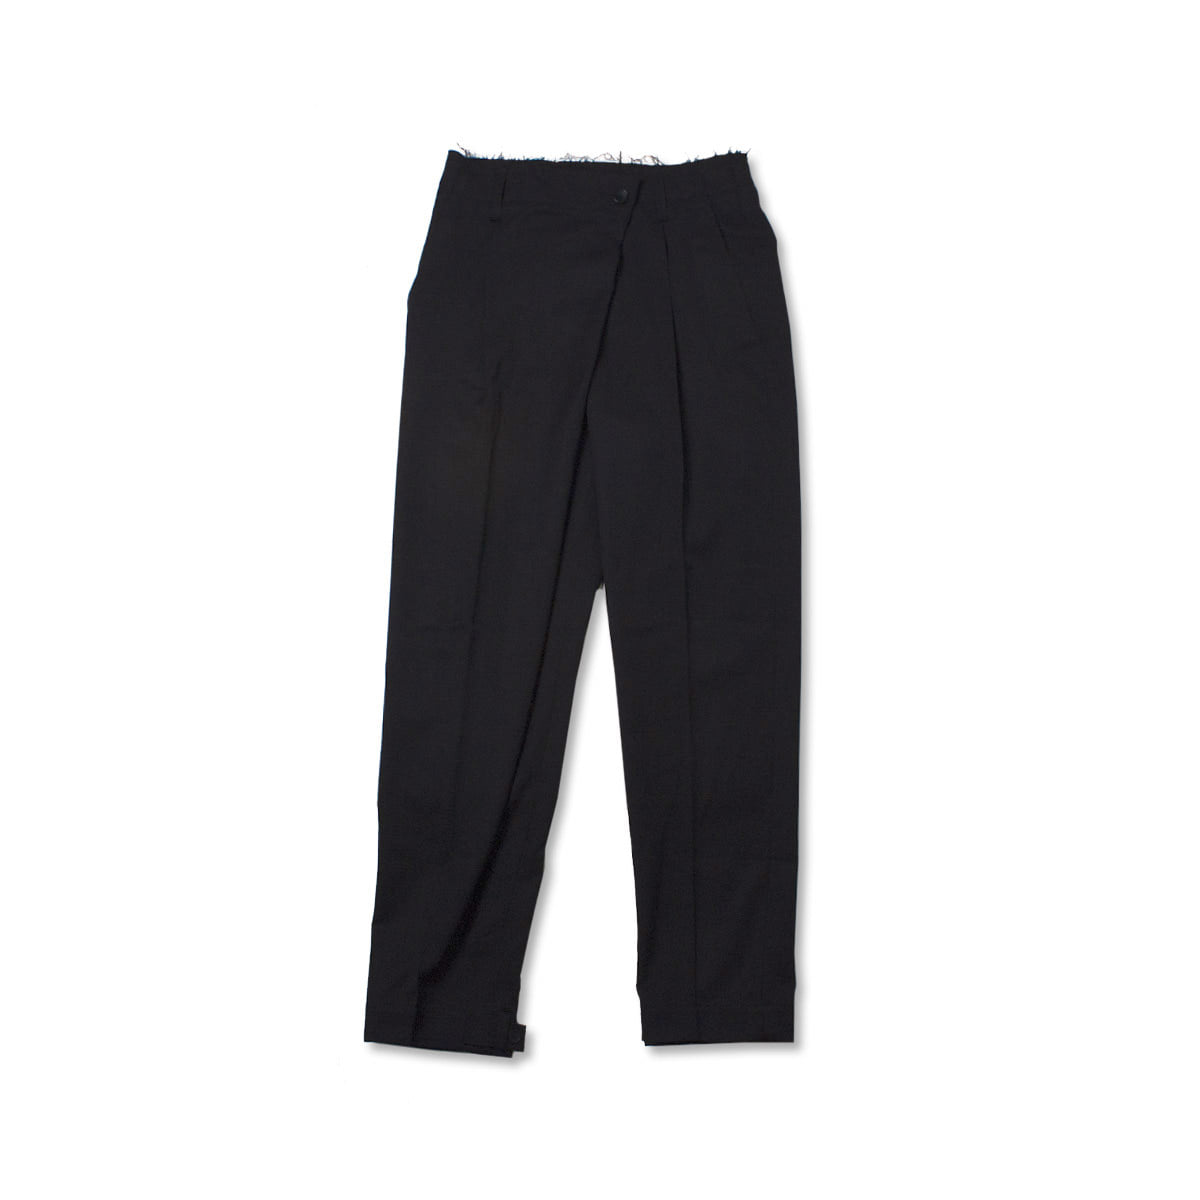 [GAKURO] WRAP PANTS 'BLACK'